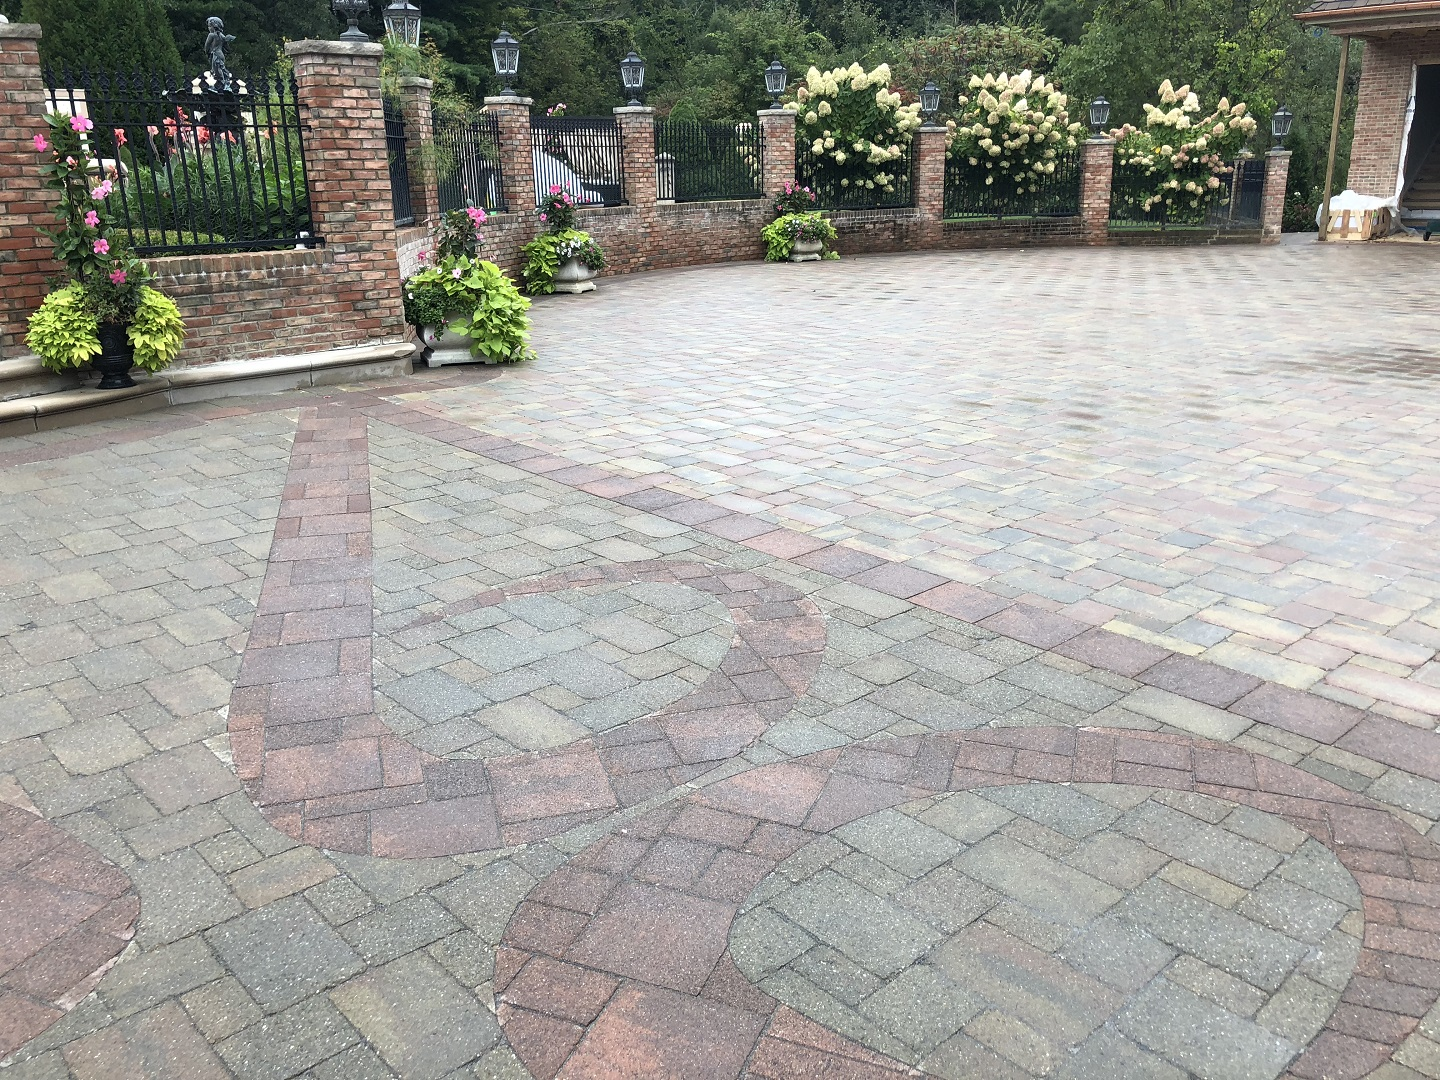 Beauitufl landscape design with driveway in Halfmoon, NY